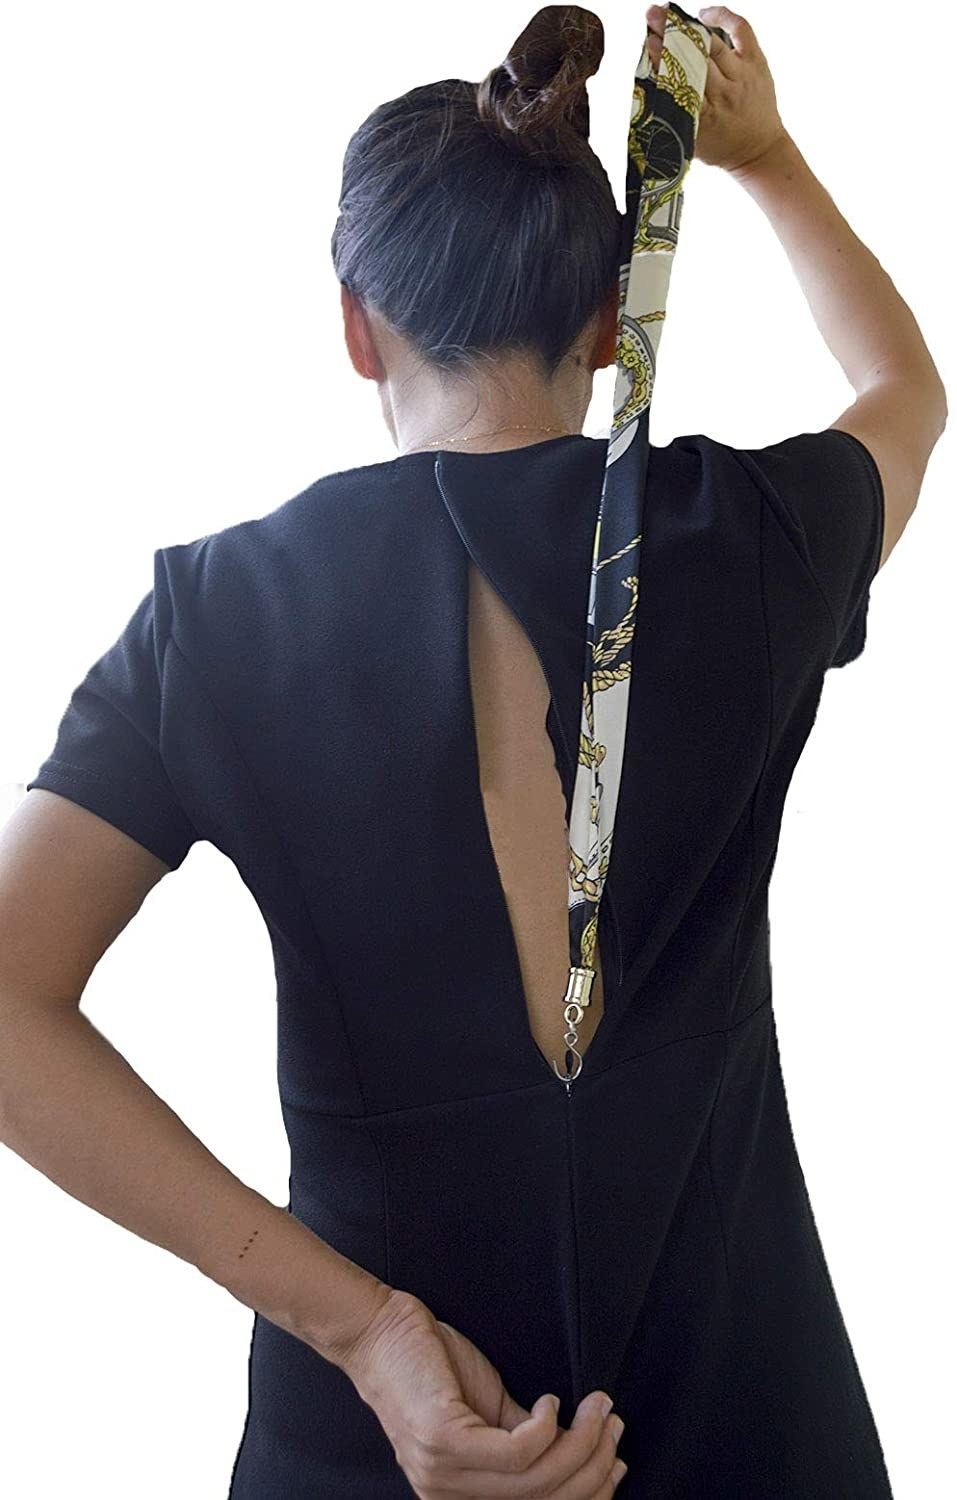 A person uses the tool to zip up the back of their dress